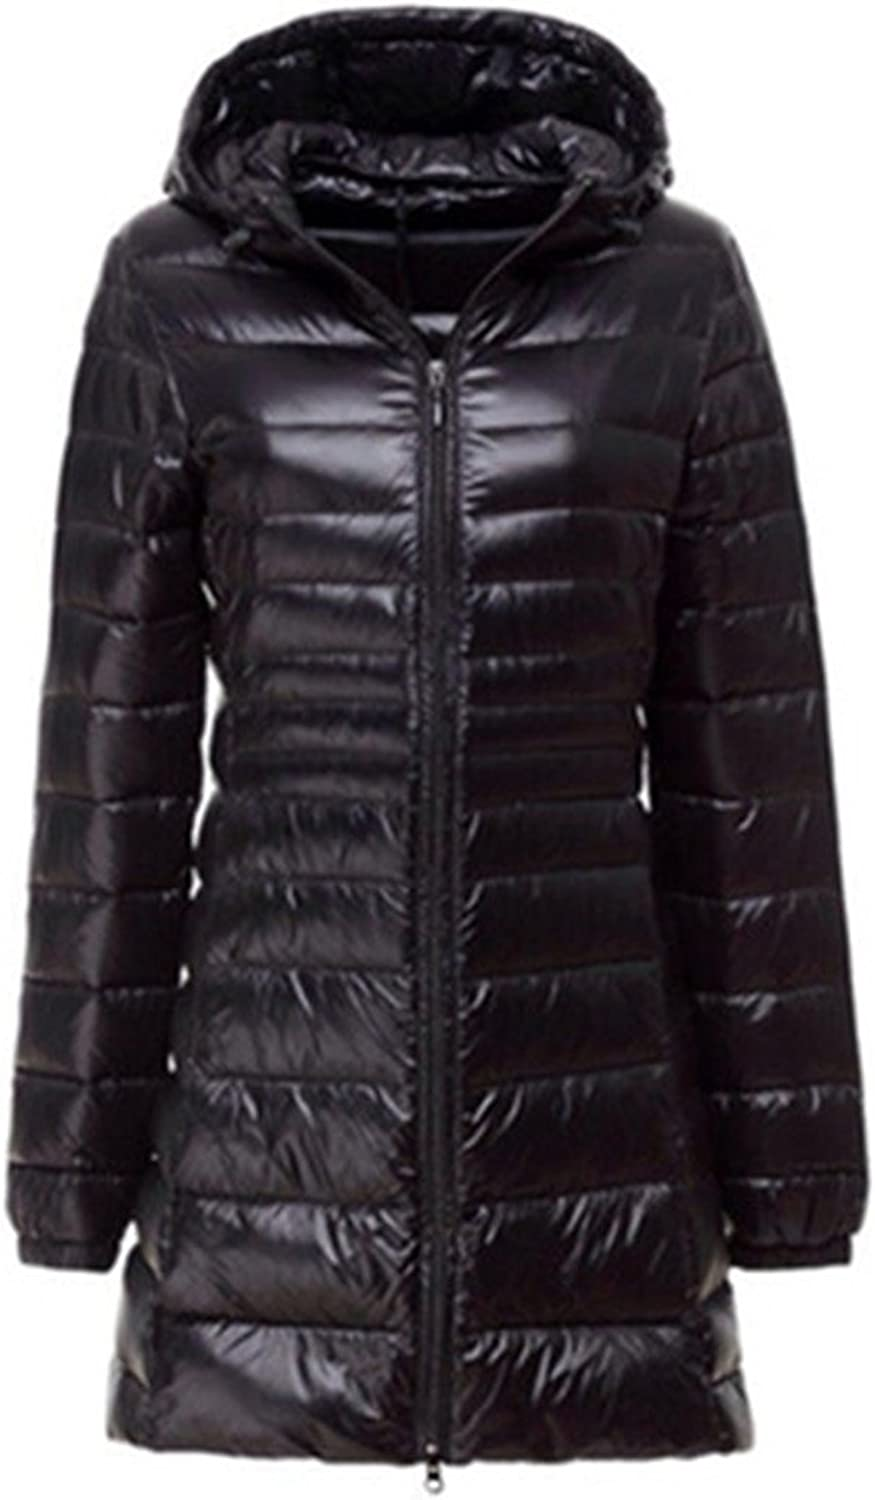 Basieng UltraThin Feather Jacket Autumn and Winter Long Hooded Section Coat